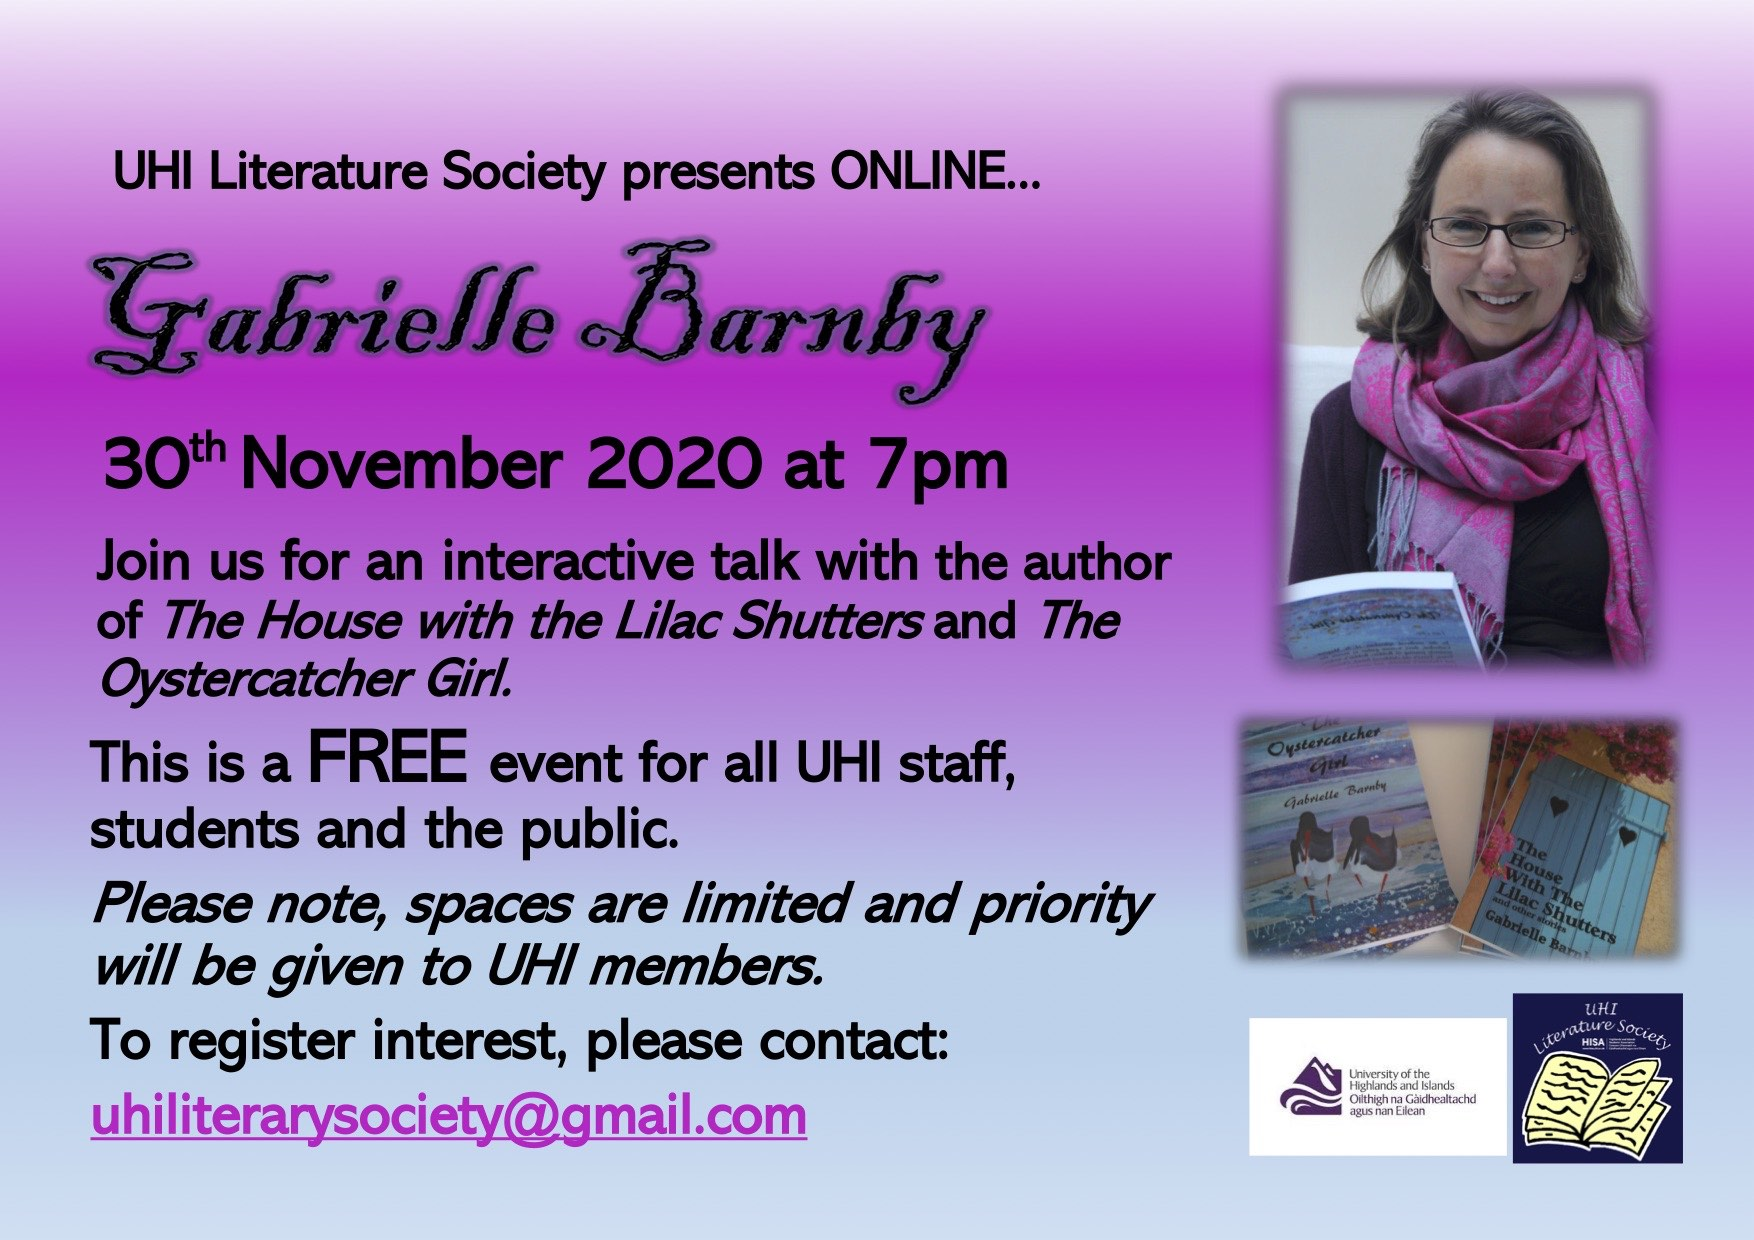 University of the Highlands and Islands, UHI Literature Society, Gabrielle Barnby, workshop, Orkney